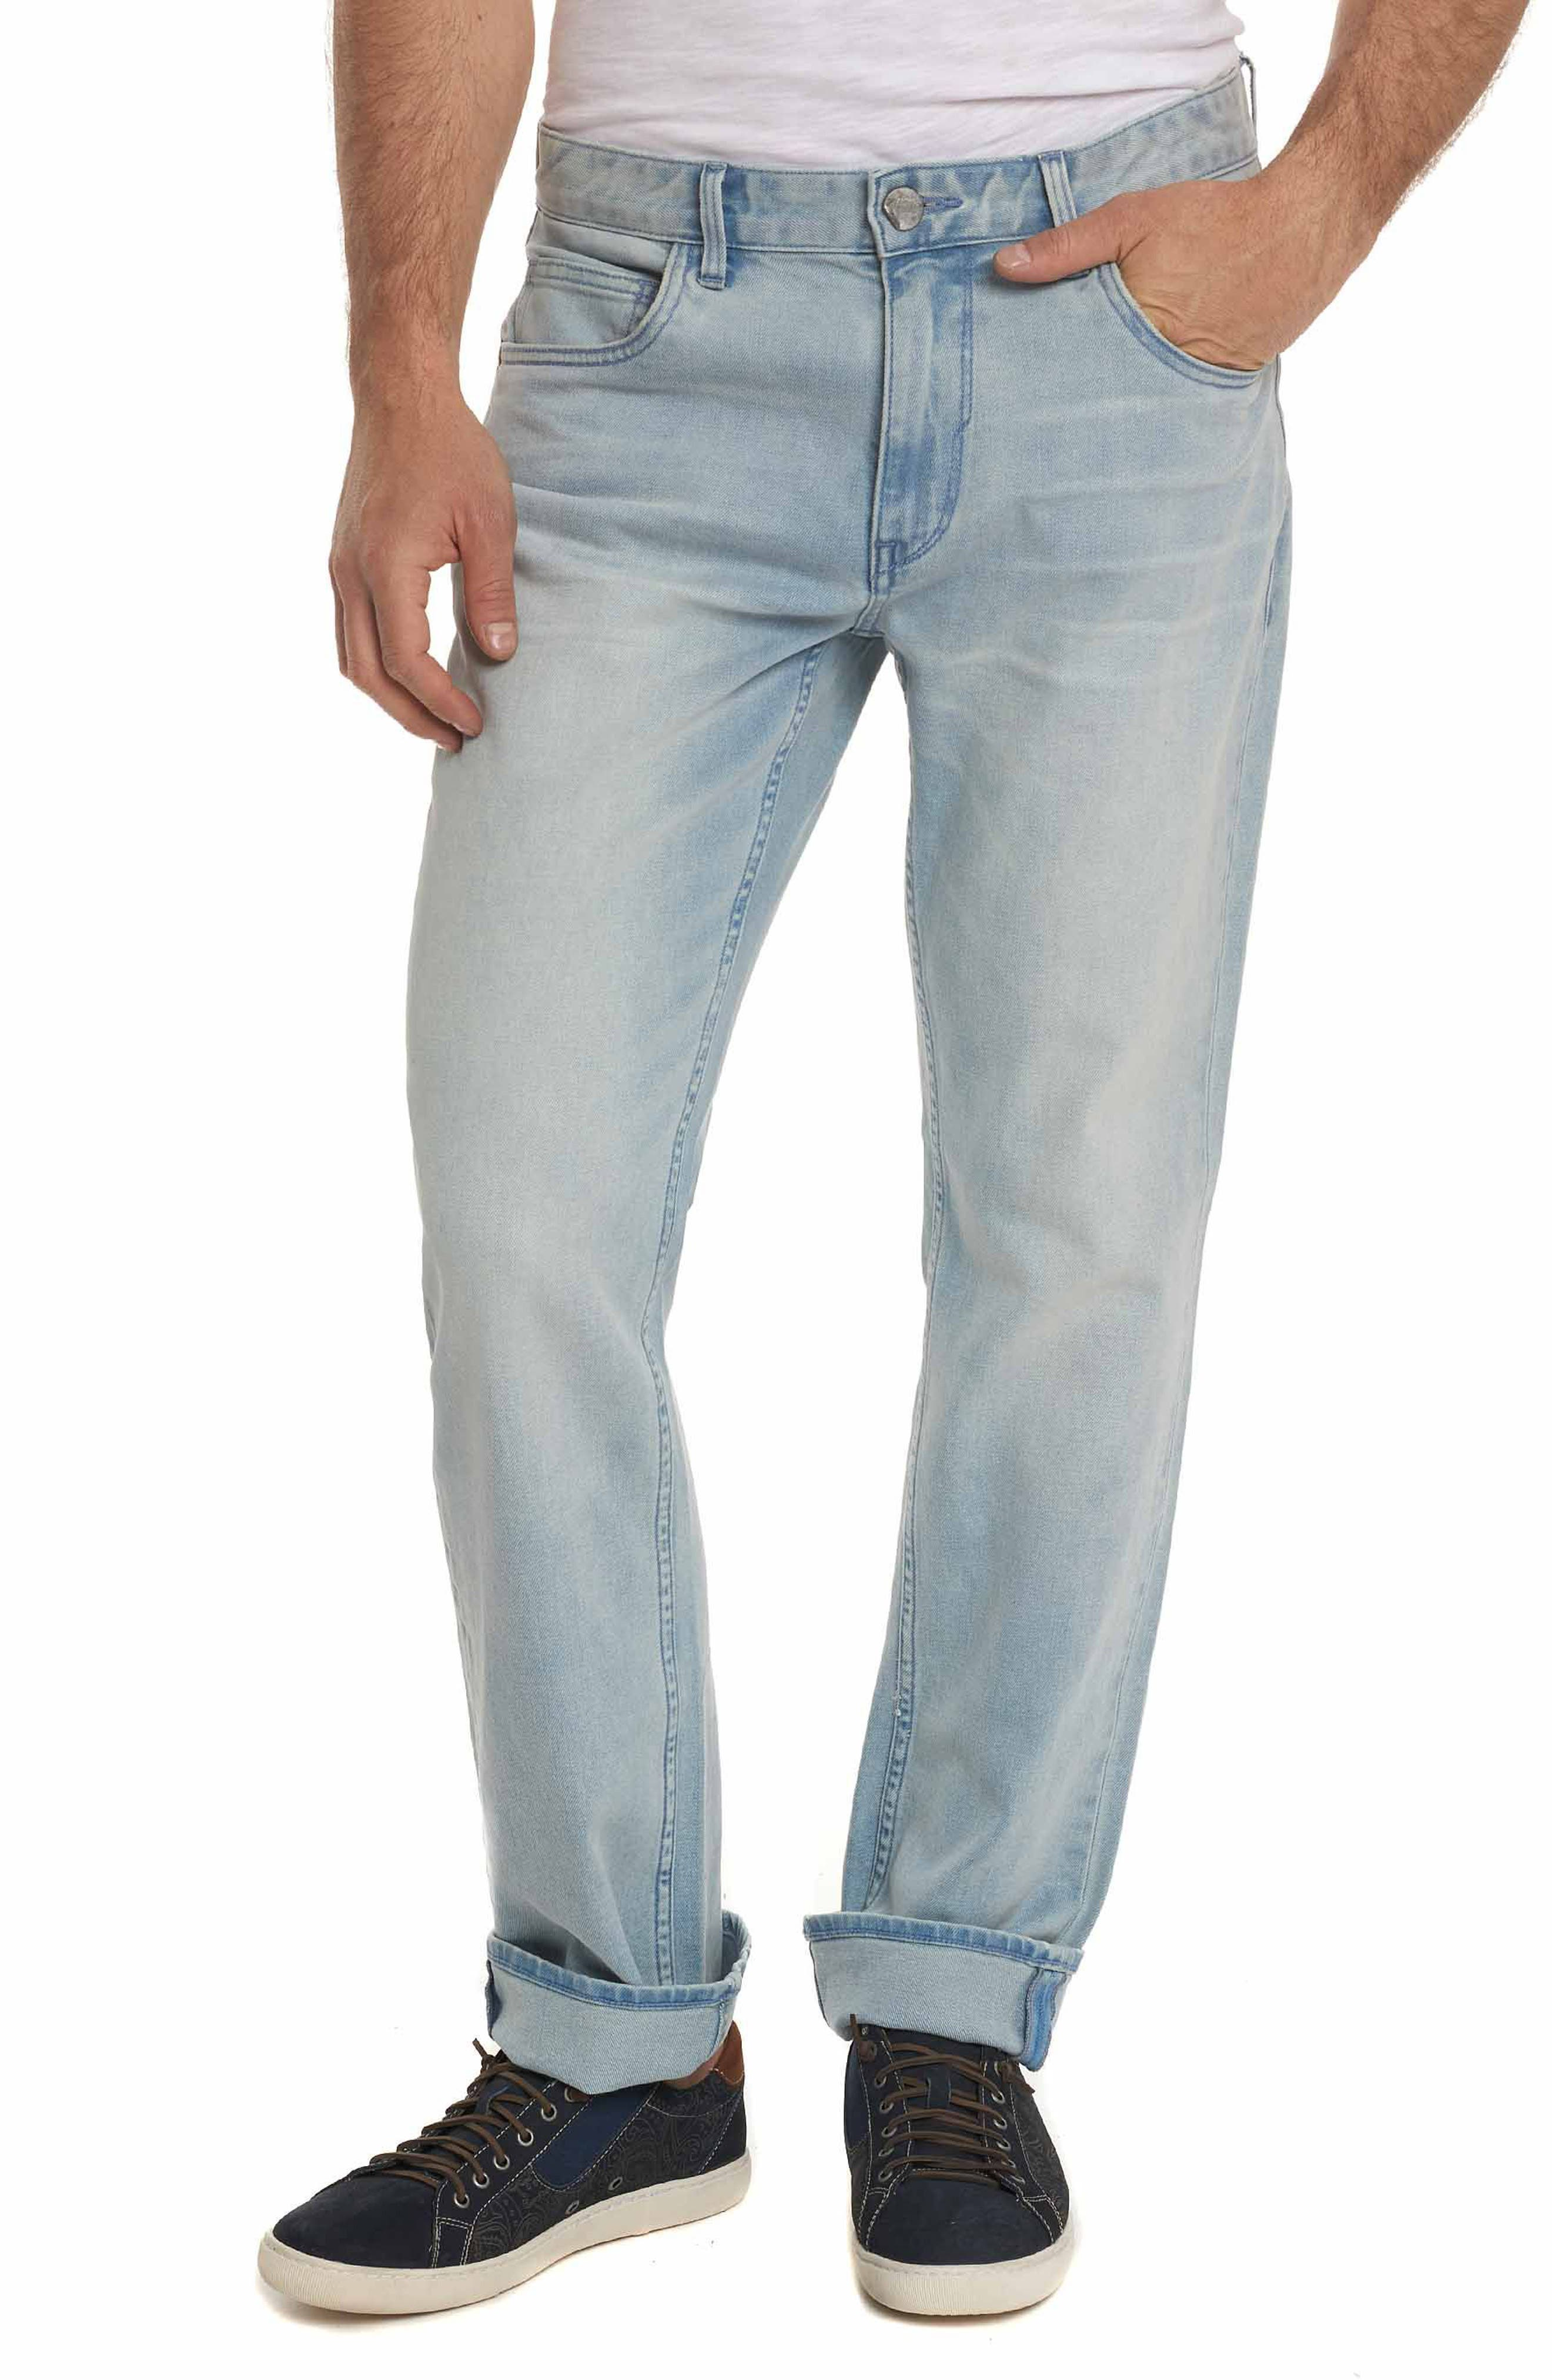 McFly Tailored Fit Jeans,                         Main,                         color, LIGHT INDIGO